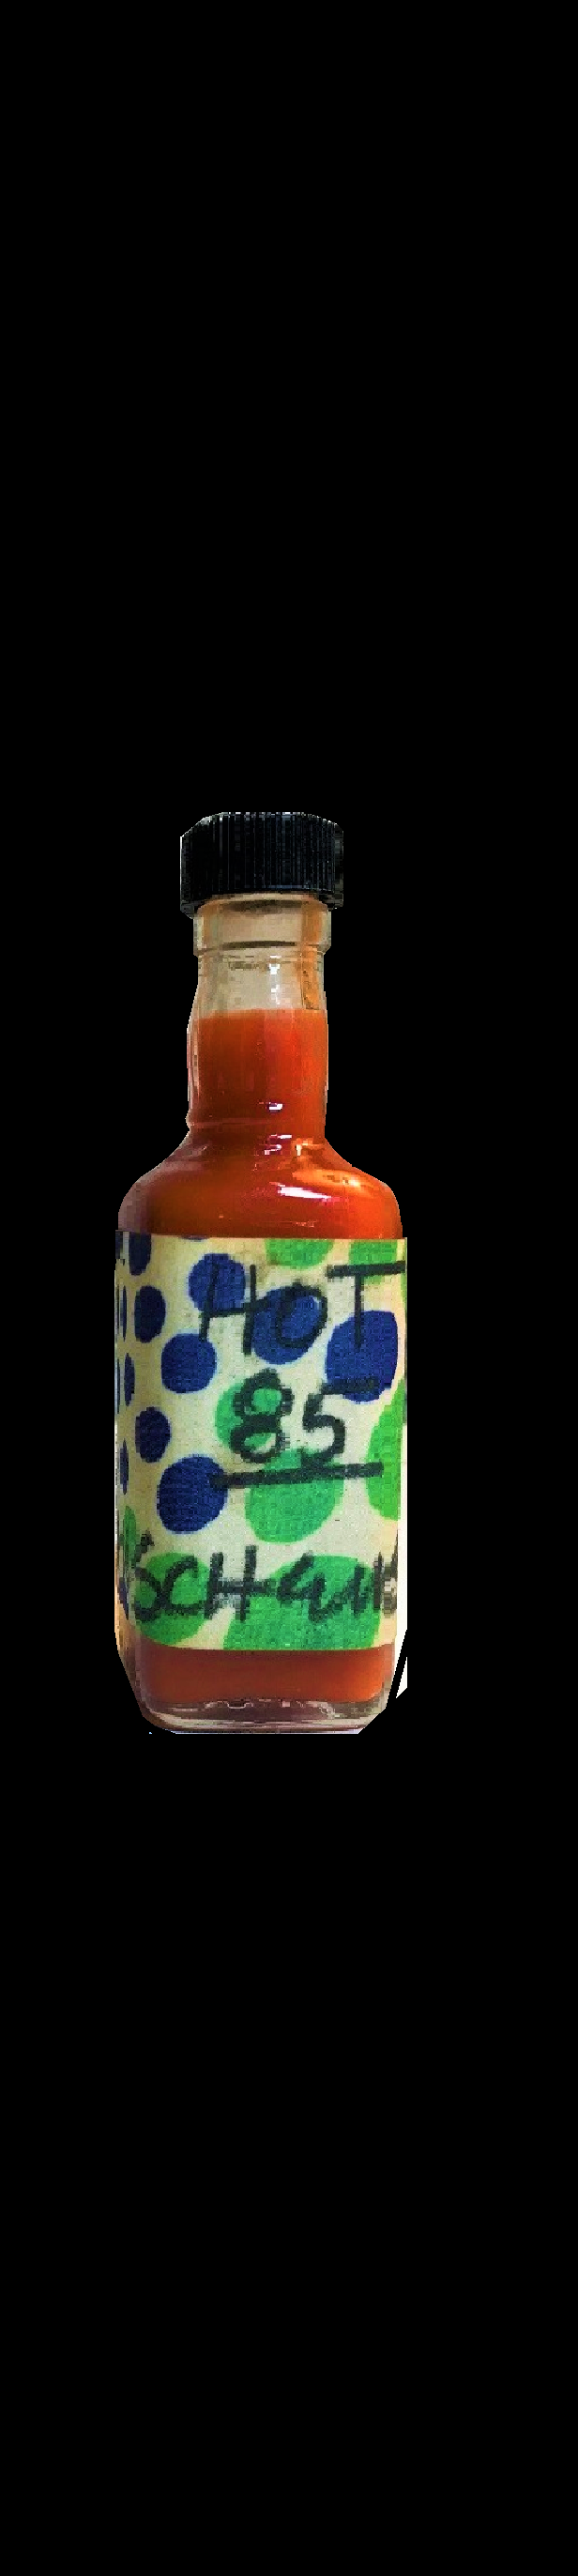 """Hot 85"",  1985, Rauschenberg's Homemade Hot Sauce Bottle, Signed/Dated, UNIQUE"